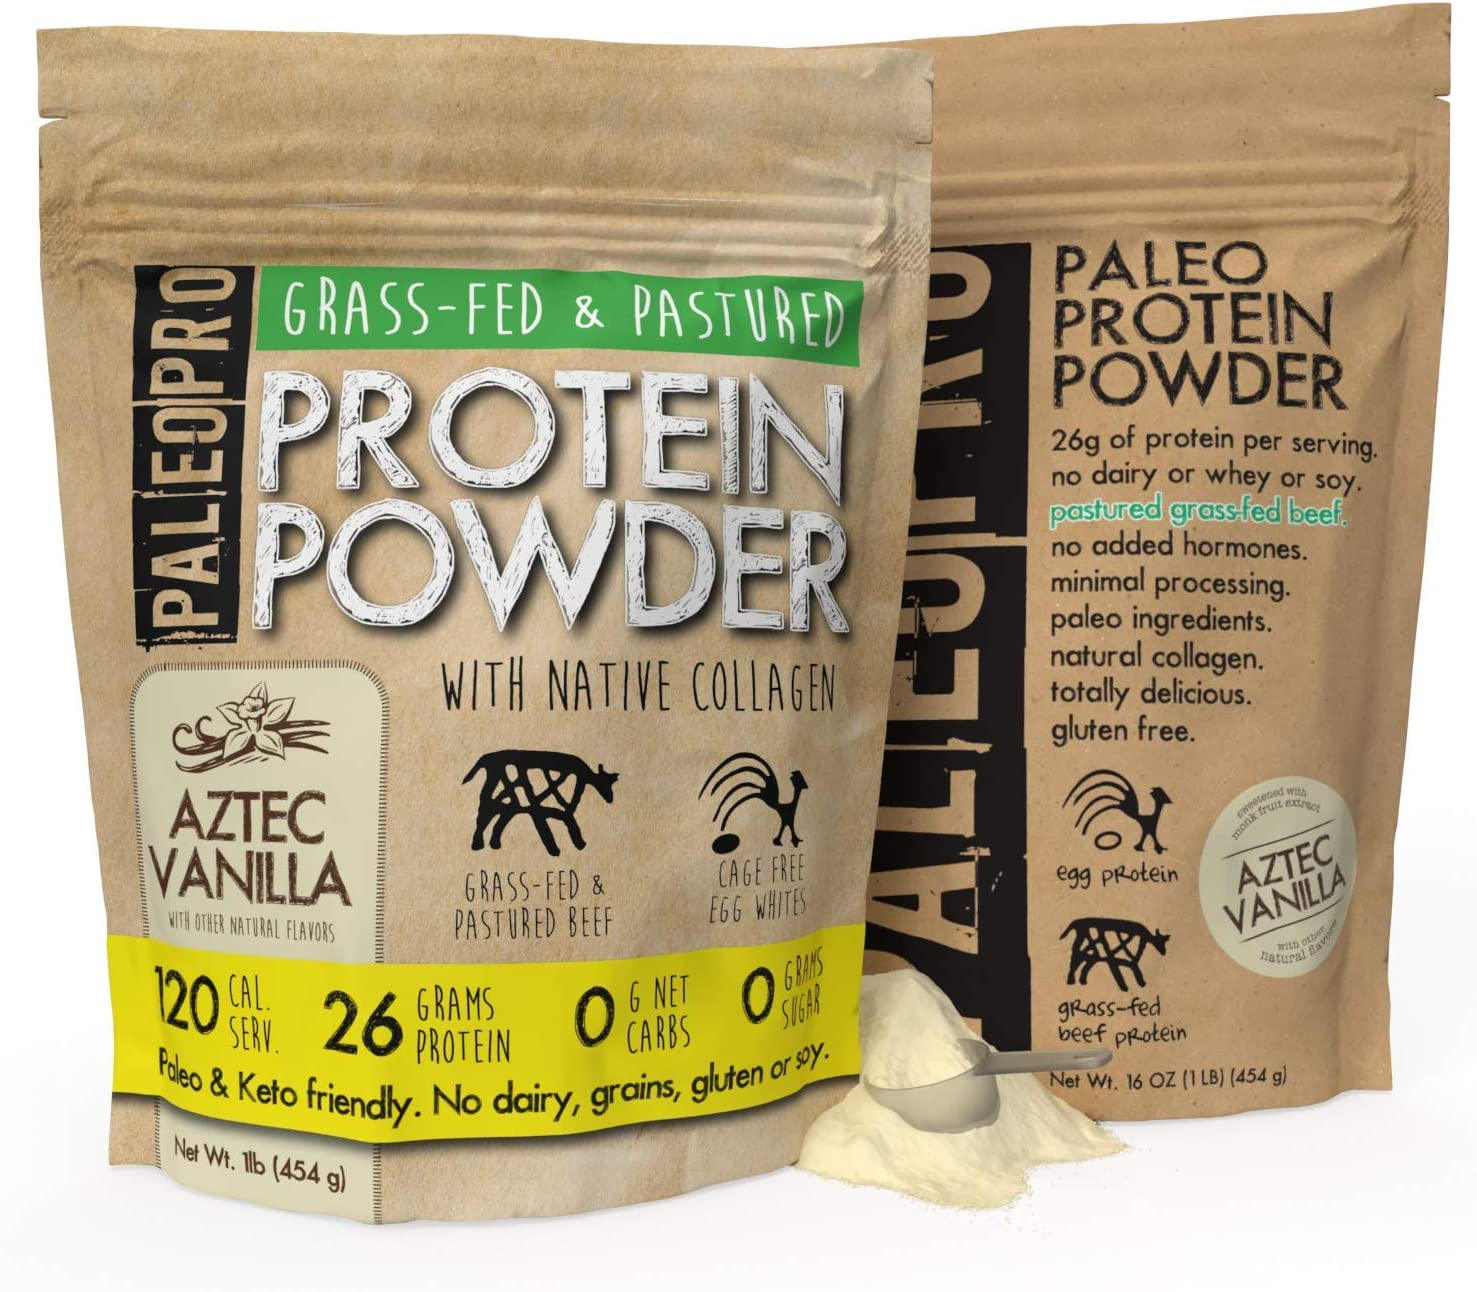 PaleoPro Protein Powder, Gluten Free, Dairy Free, Whey Free, Soy Free, No Added Hormones, Pastured Grass-fed Beef, Minimally Processed Paleo Ingredients, 1lb/454g, About 15 Servings, Aztec Vanilla - packaging may vary